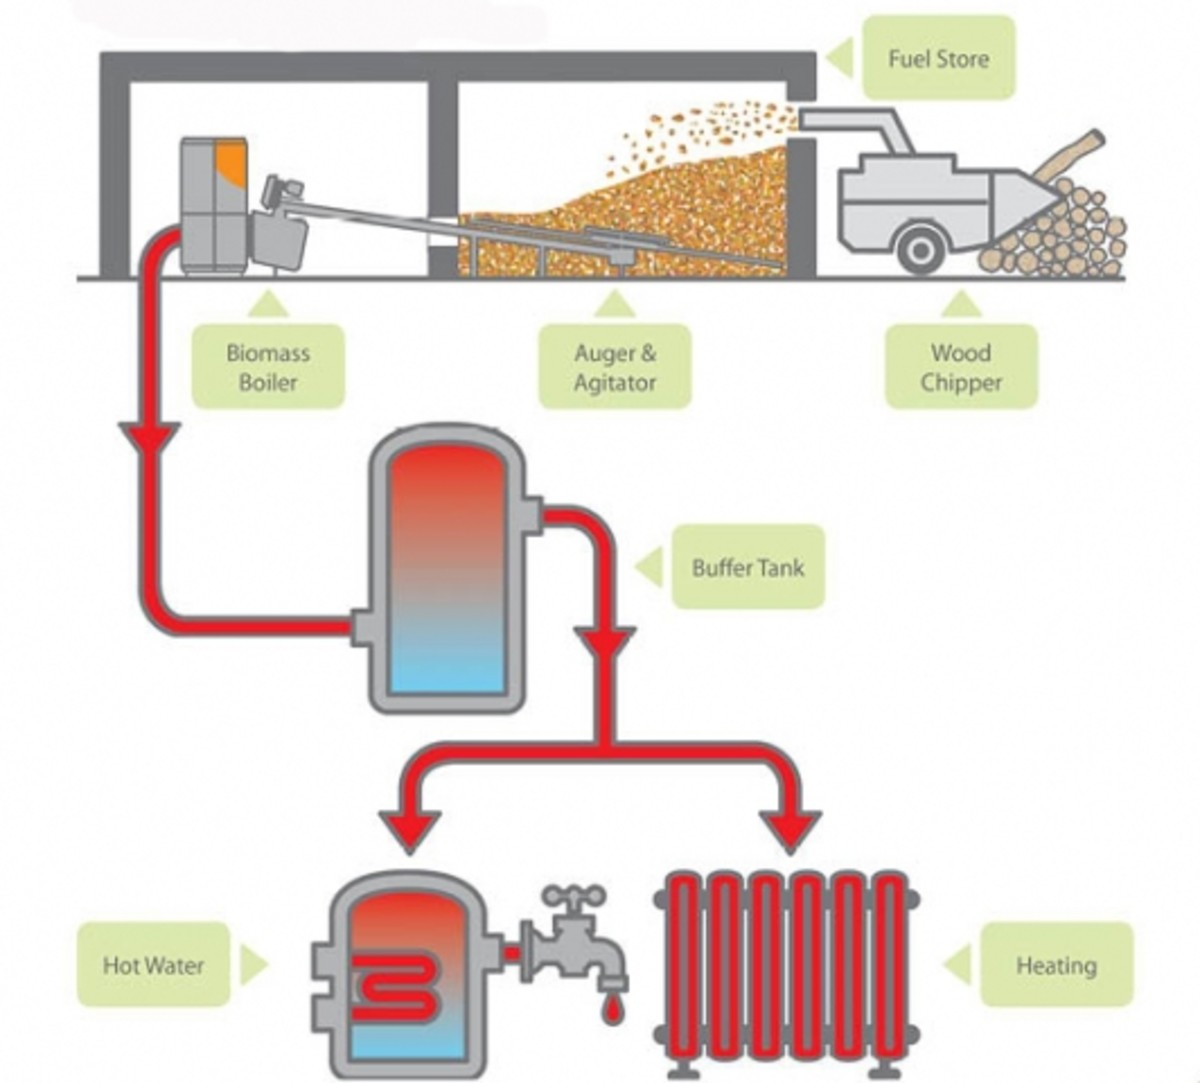 hight resolution of flow chart detailing wood chip fuel stores